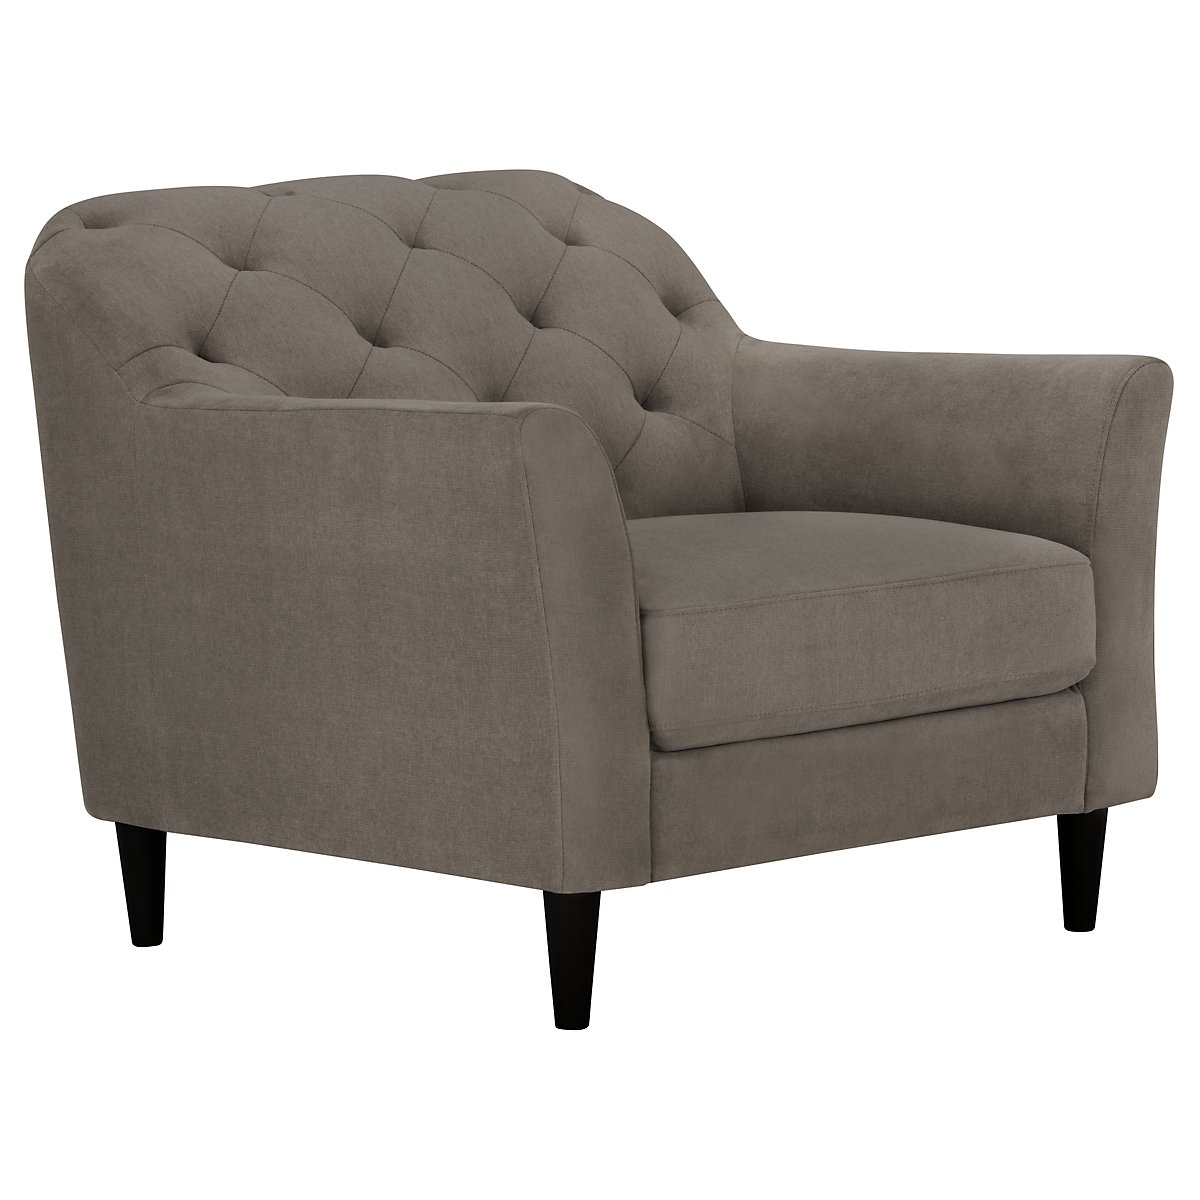 Living Room Chair City Furniture Living Room Furniture Chairs